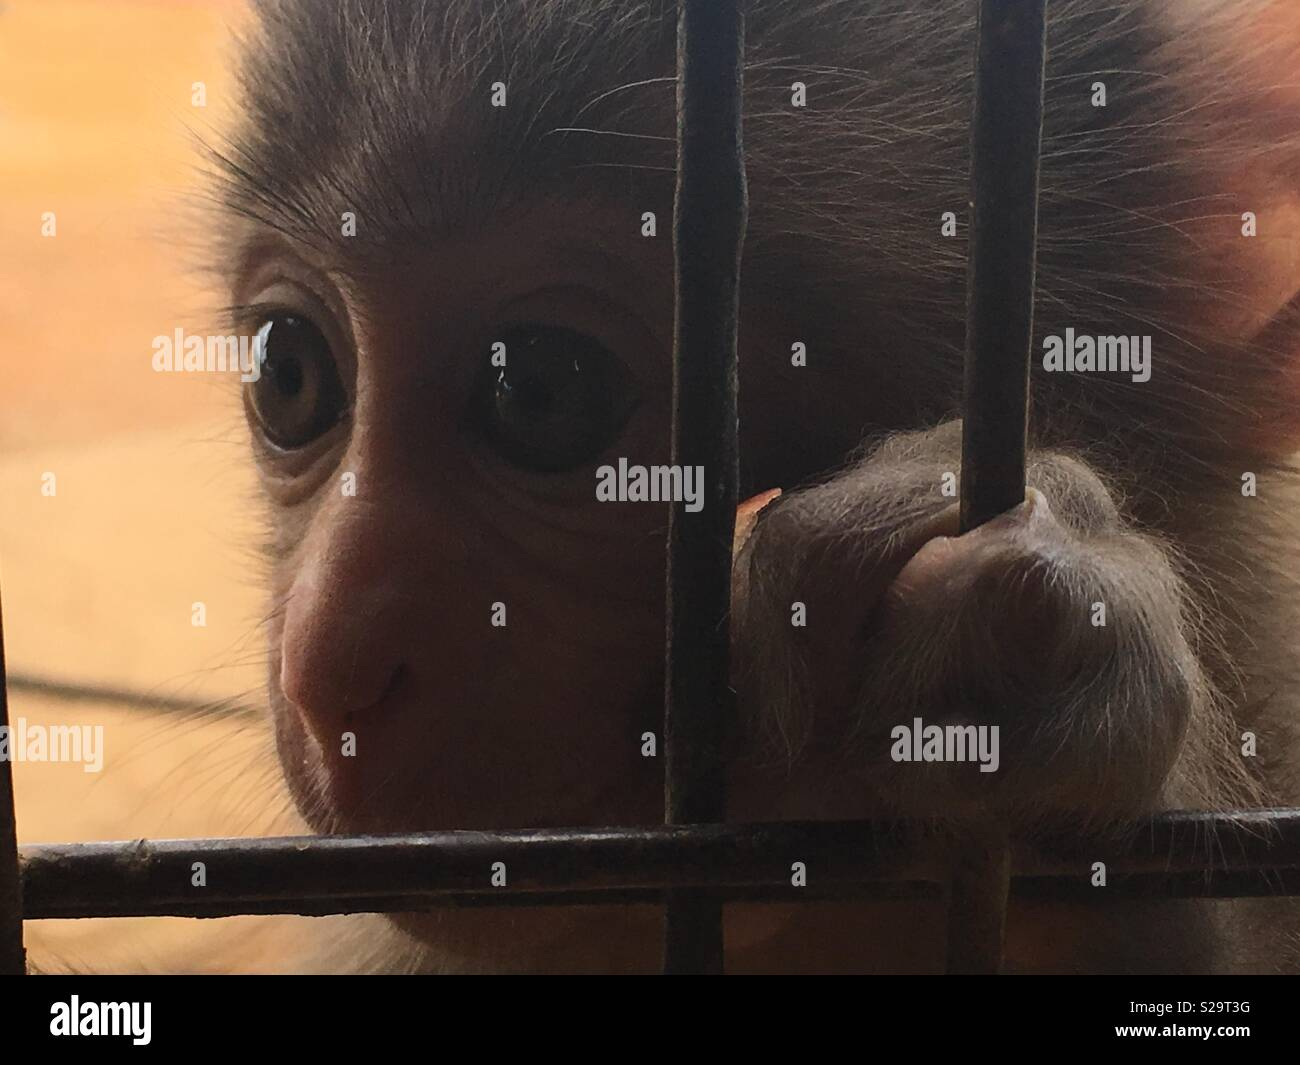 Caged baby monkey Immagini Stock